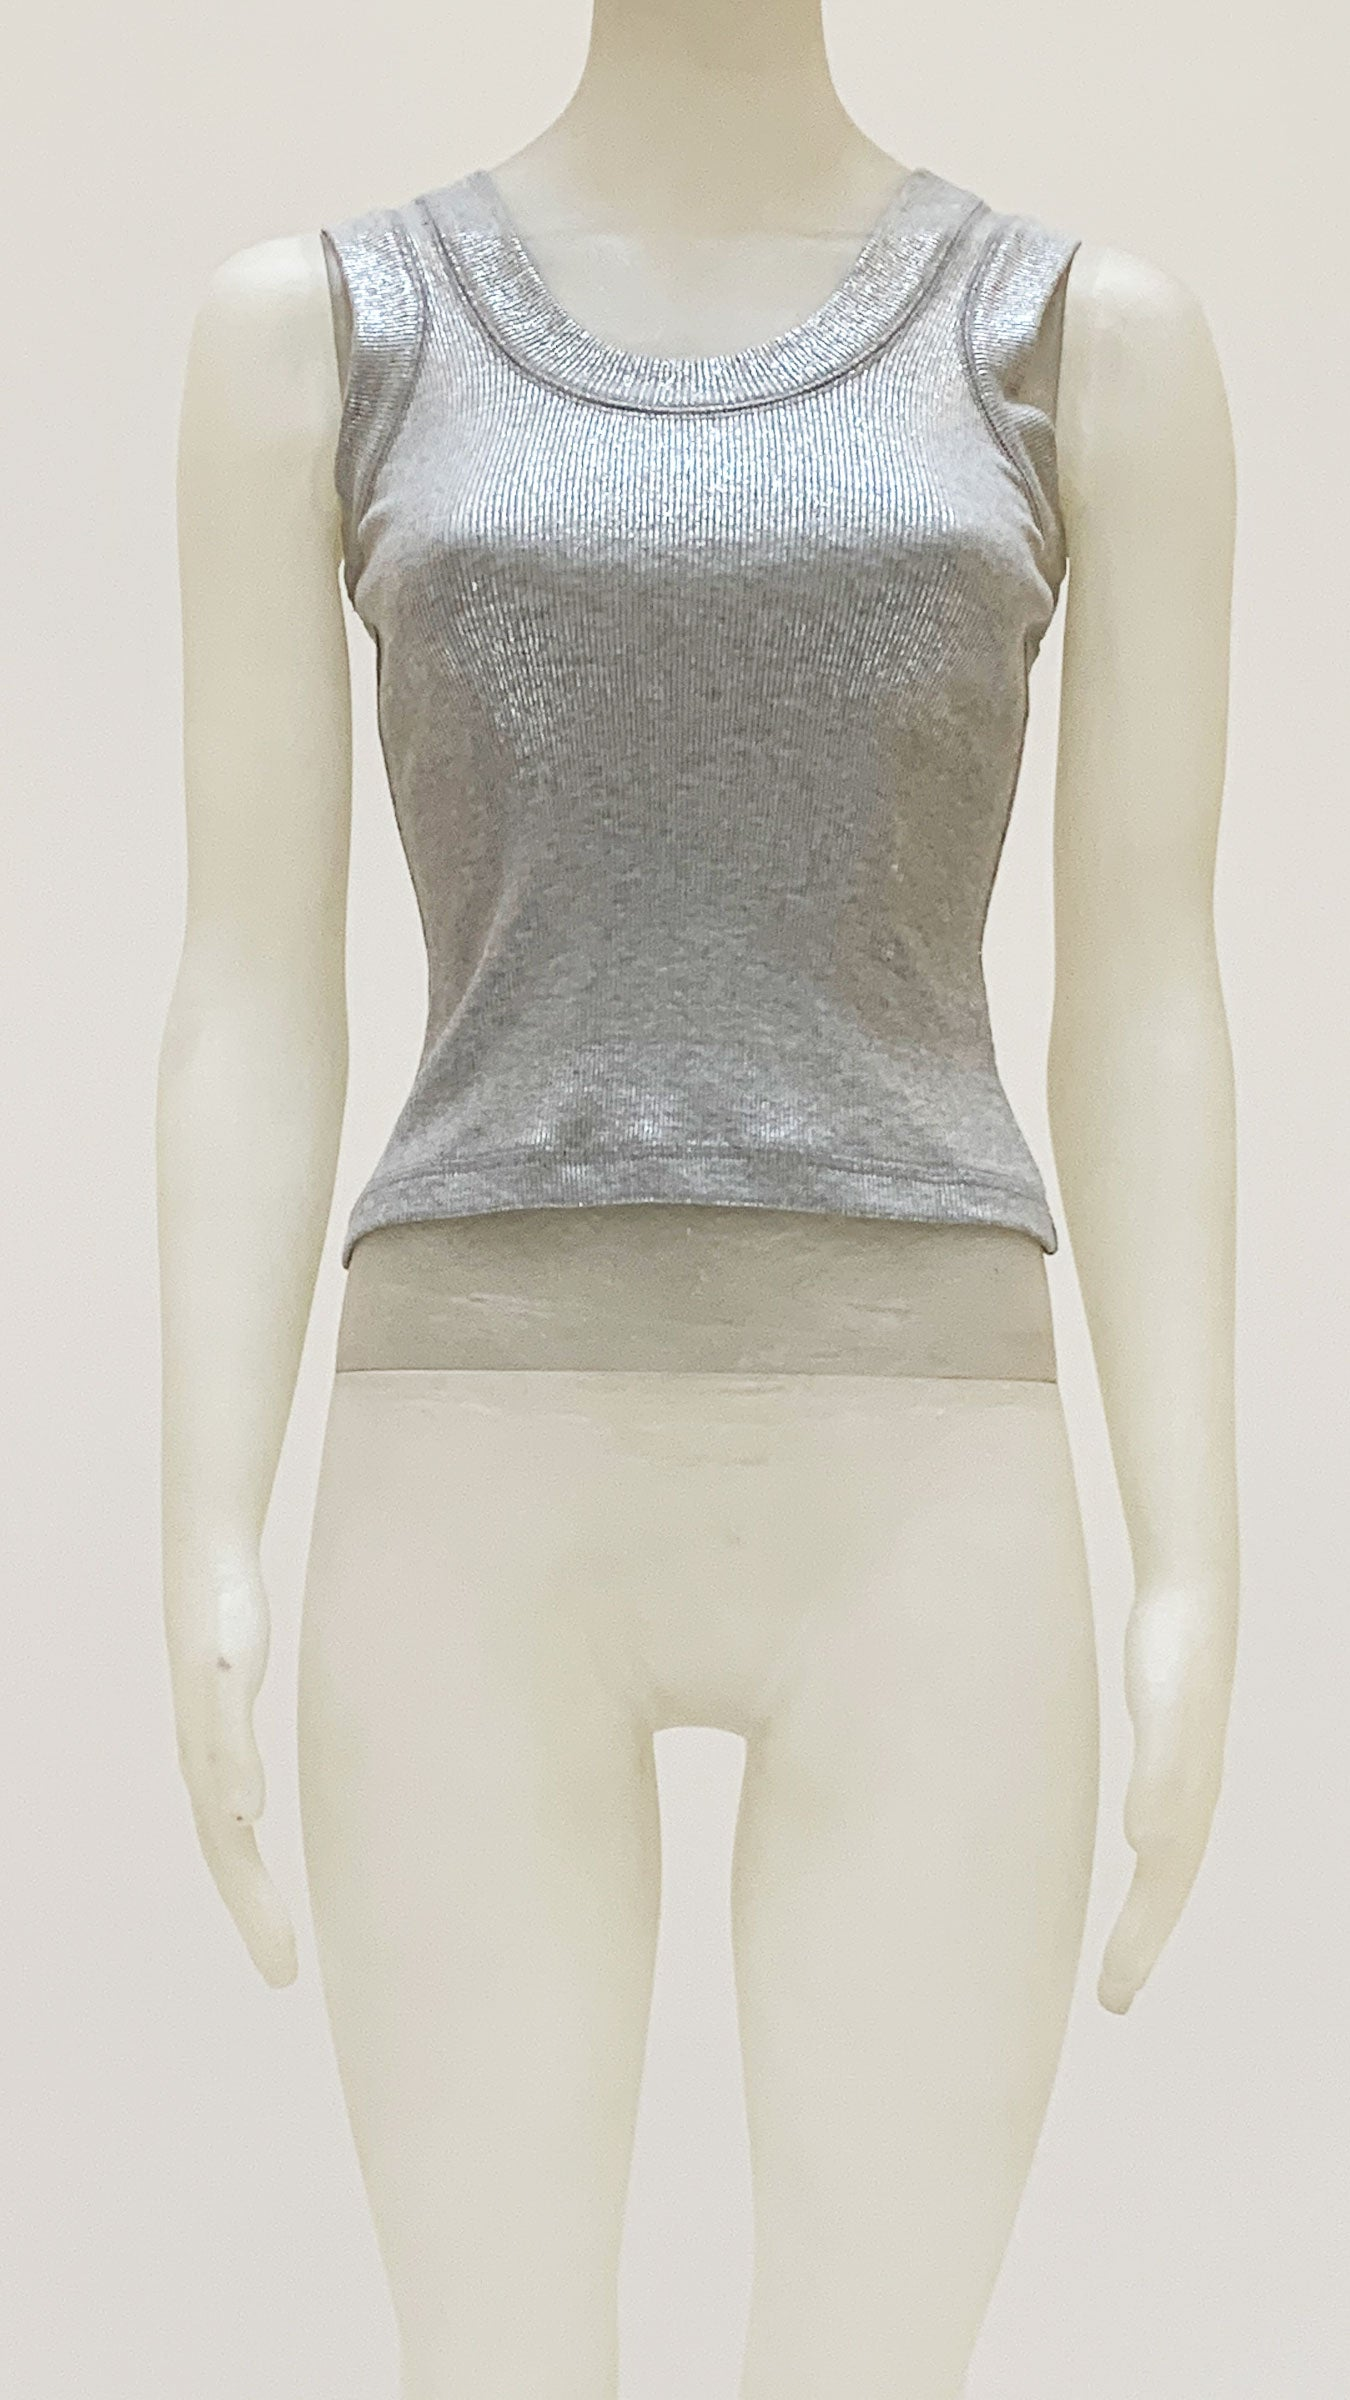 SILVER SPARKLE TERRY RACER TEE - 1